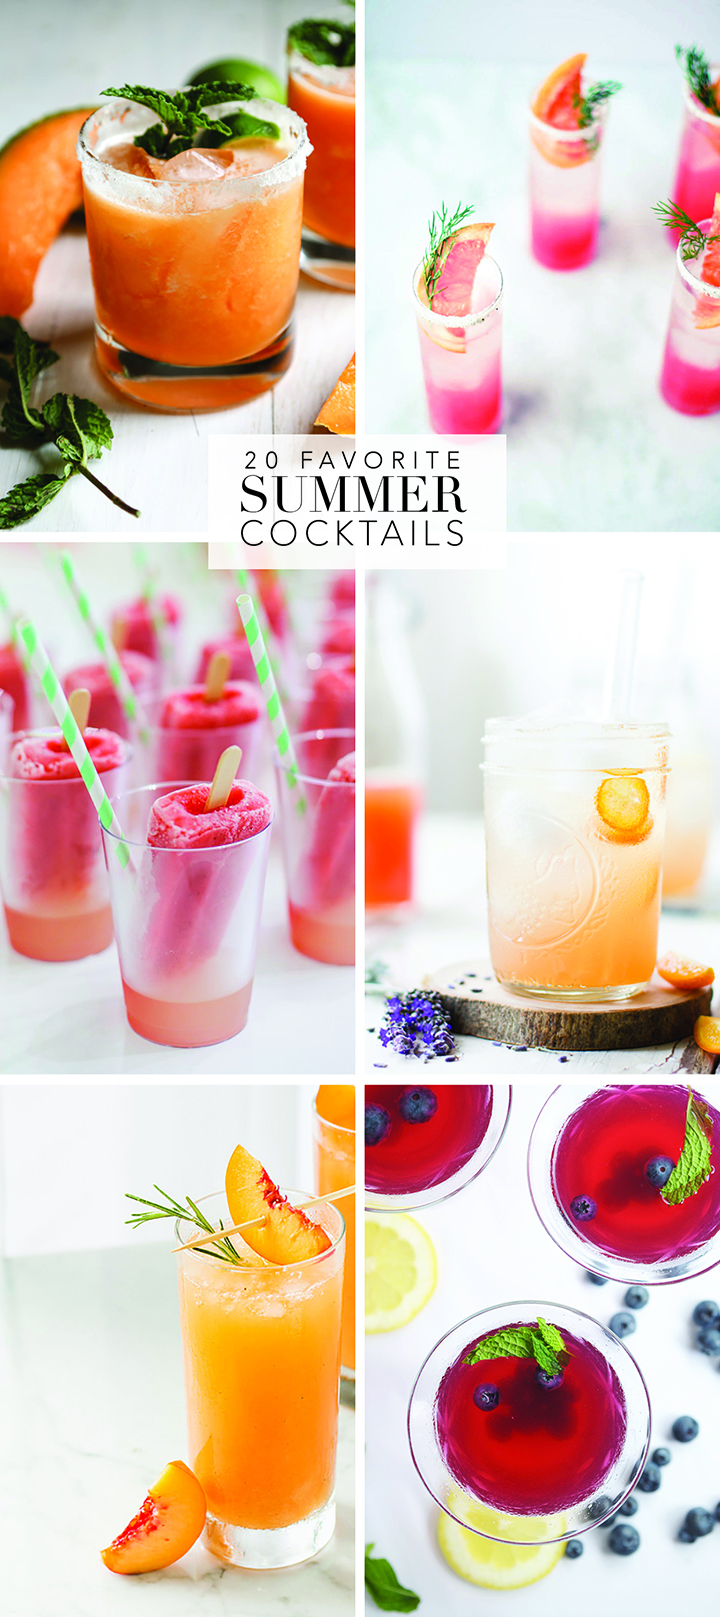 here's what you should be drinking this summer! 20 favorite summer cocktails.